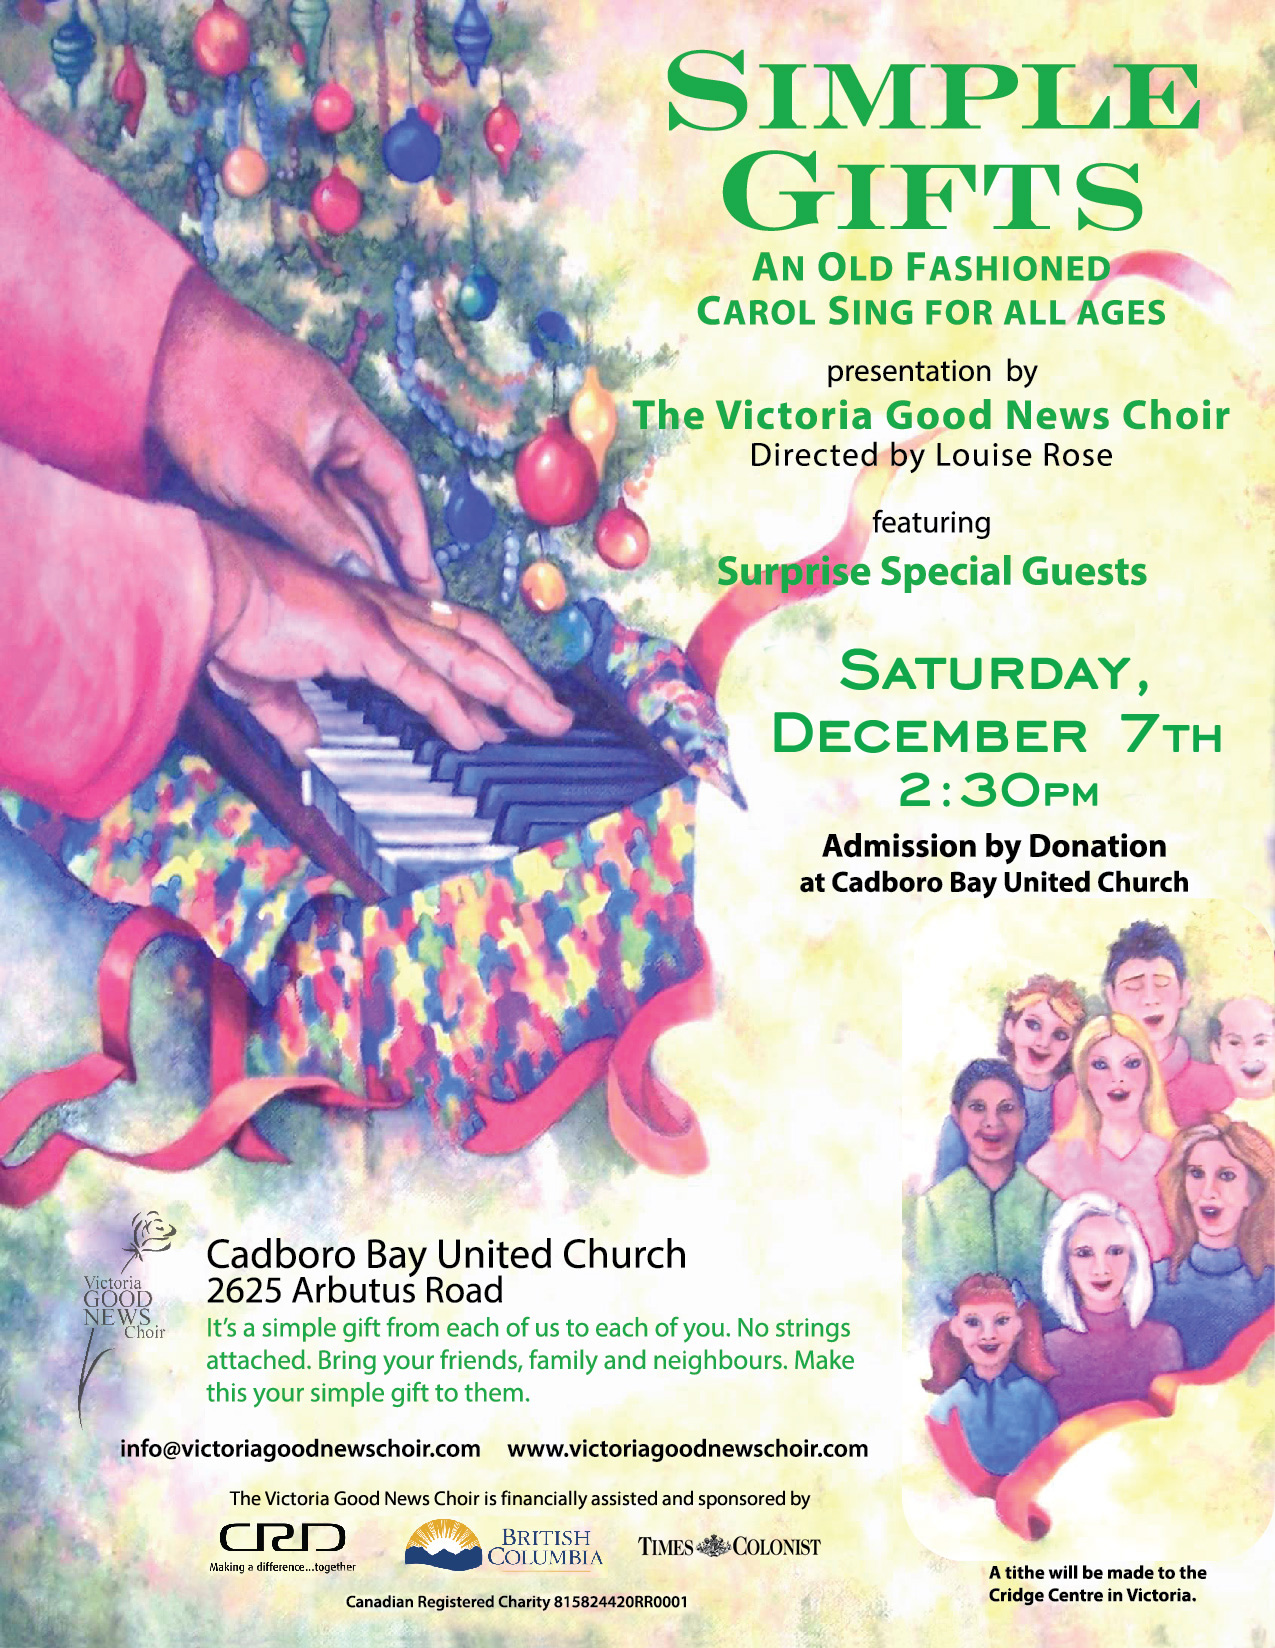 Saturday, December 7th, 2019 Simple Gifts, An Old Fashioned Carol Sing for All Ages, 2:30pm